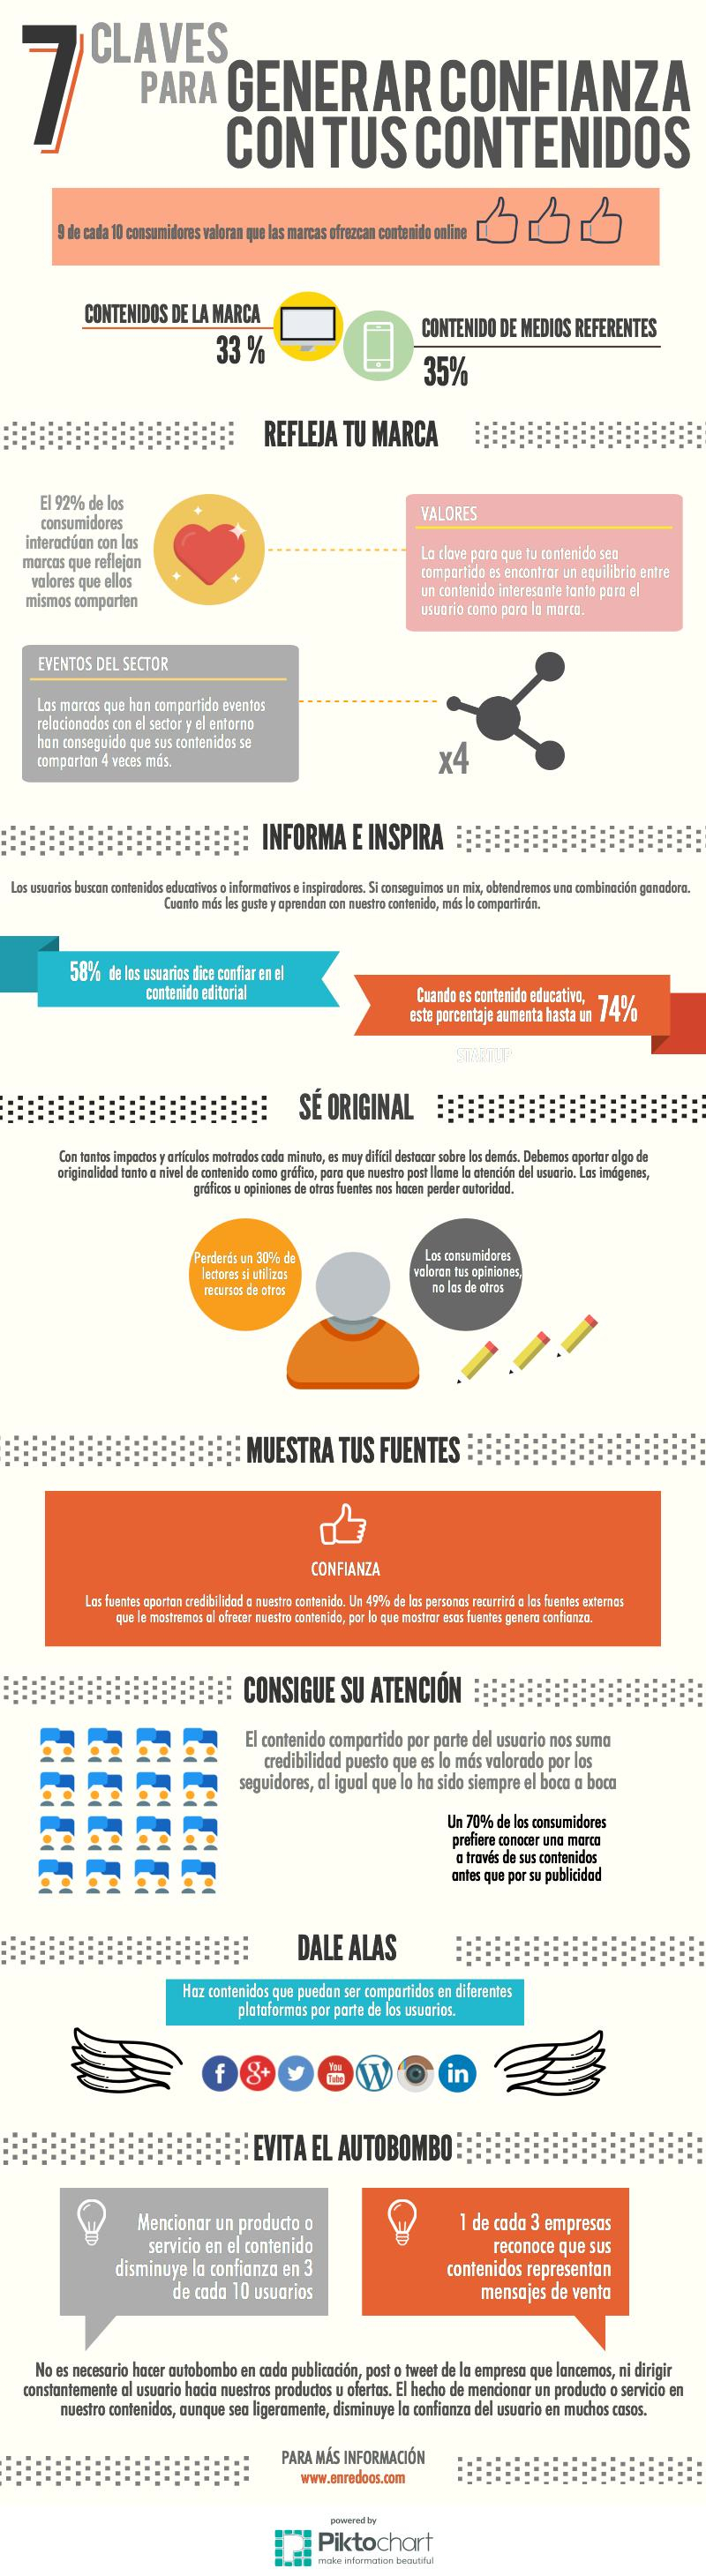 7 claves para generar confianza con tus Contenidos #infografia #infographic #marketing